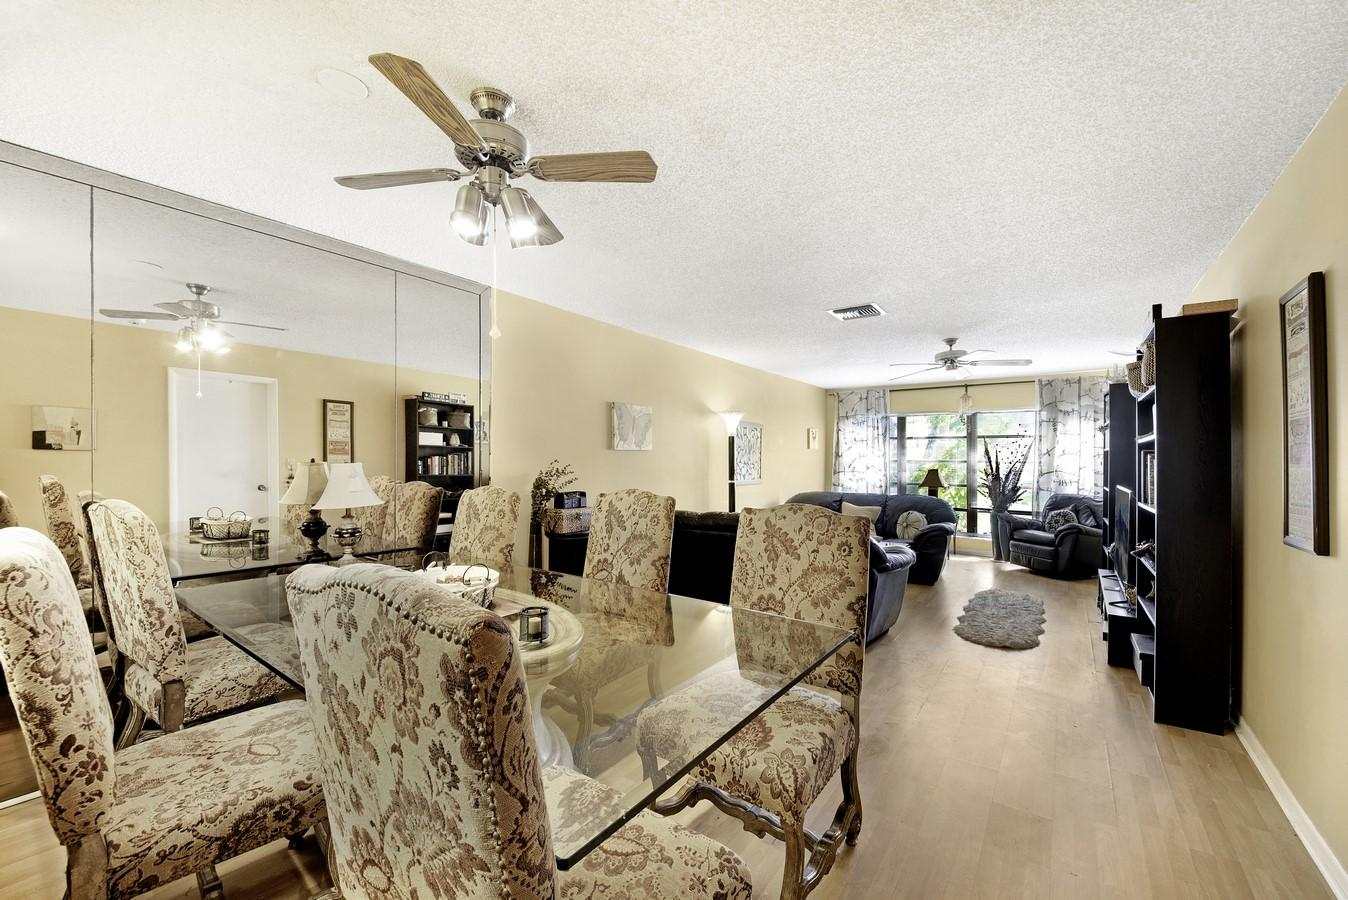 13478 Sabal Palm Court C Delray Beach, FL 33484 small photo 3